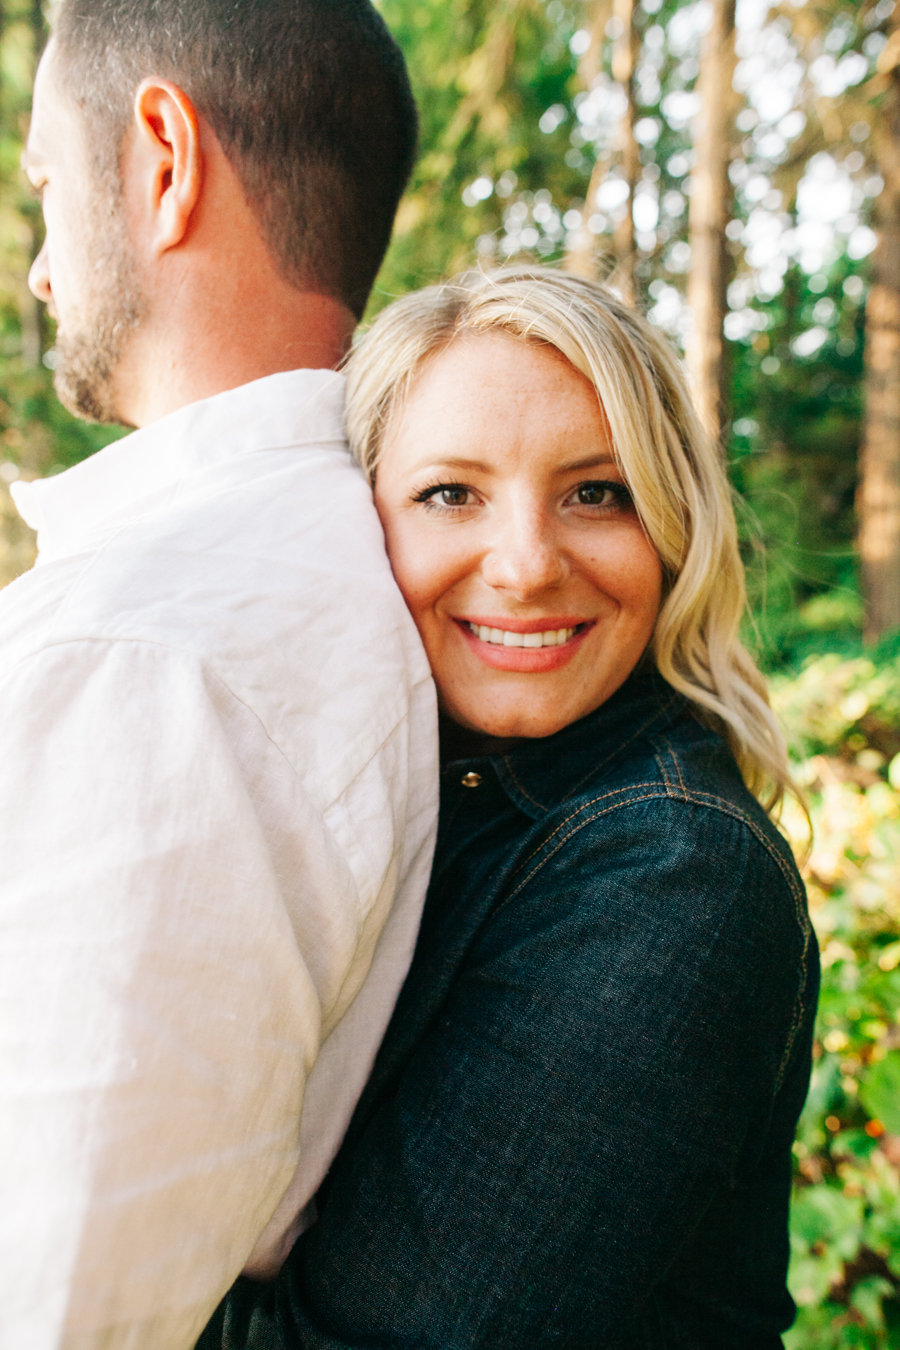 022-larrabee-state-park-engagement-session-bellingham-washington-katheryn-moran-photography.jpg